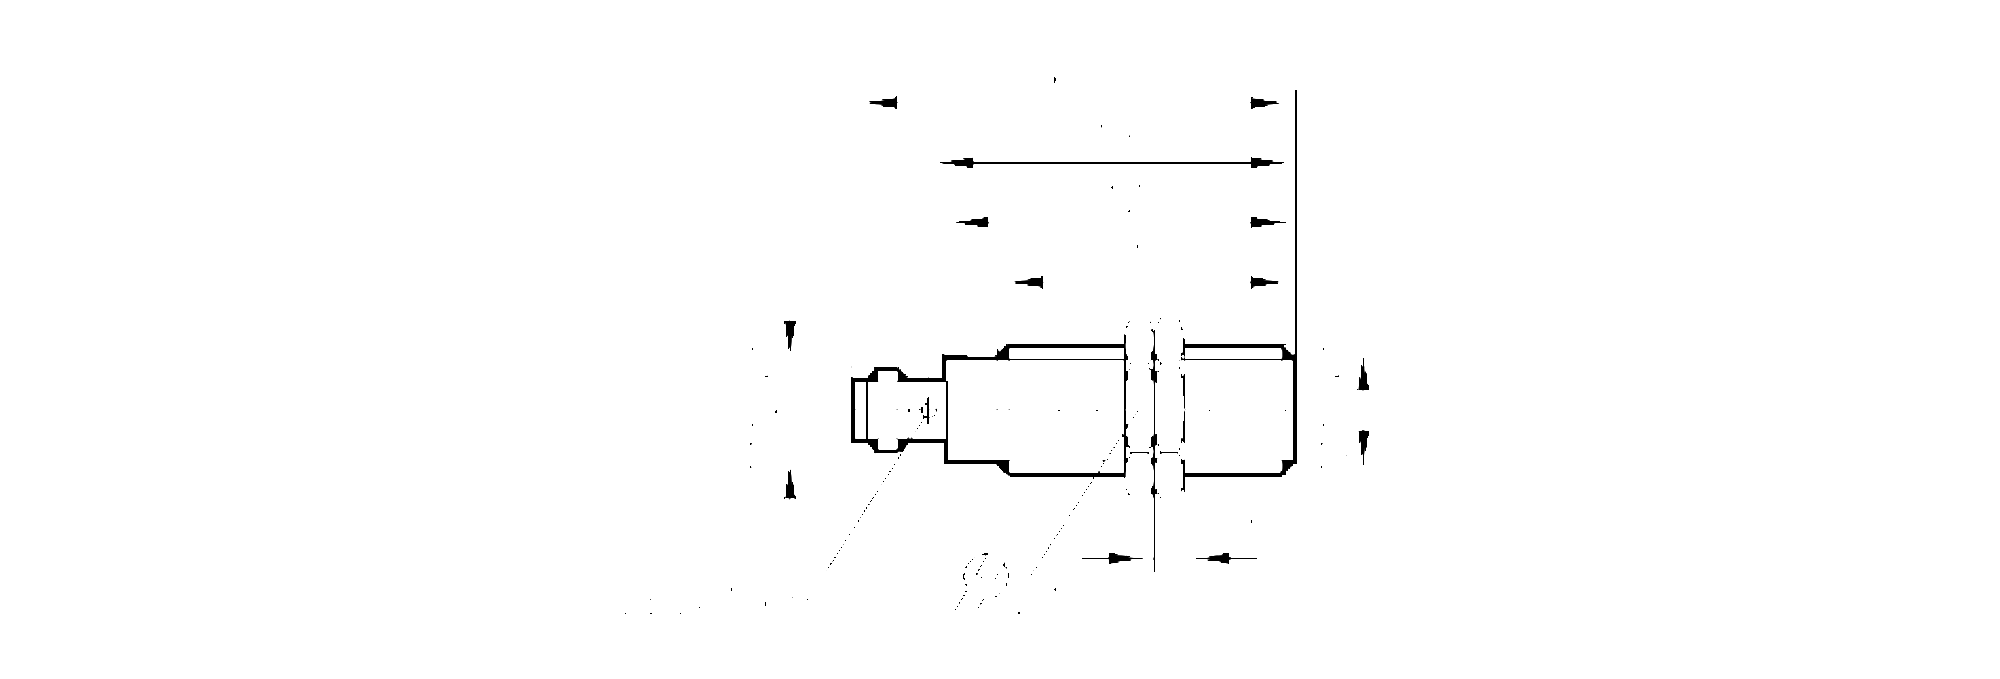 Oge200 Through Beam Sensor Receiver Ifm Electronic Pnp Output Wiring Diagram Emitter M12 Scale Drawing